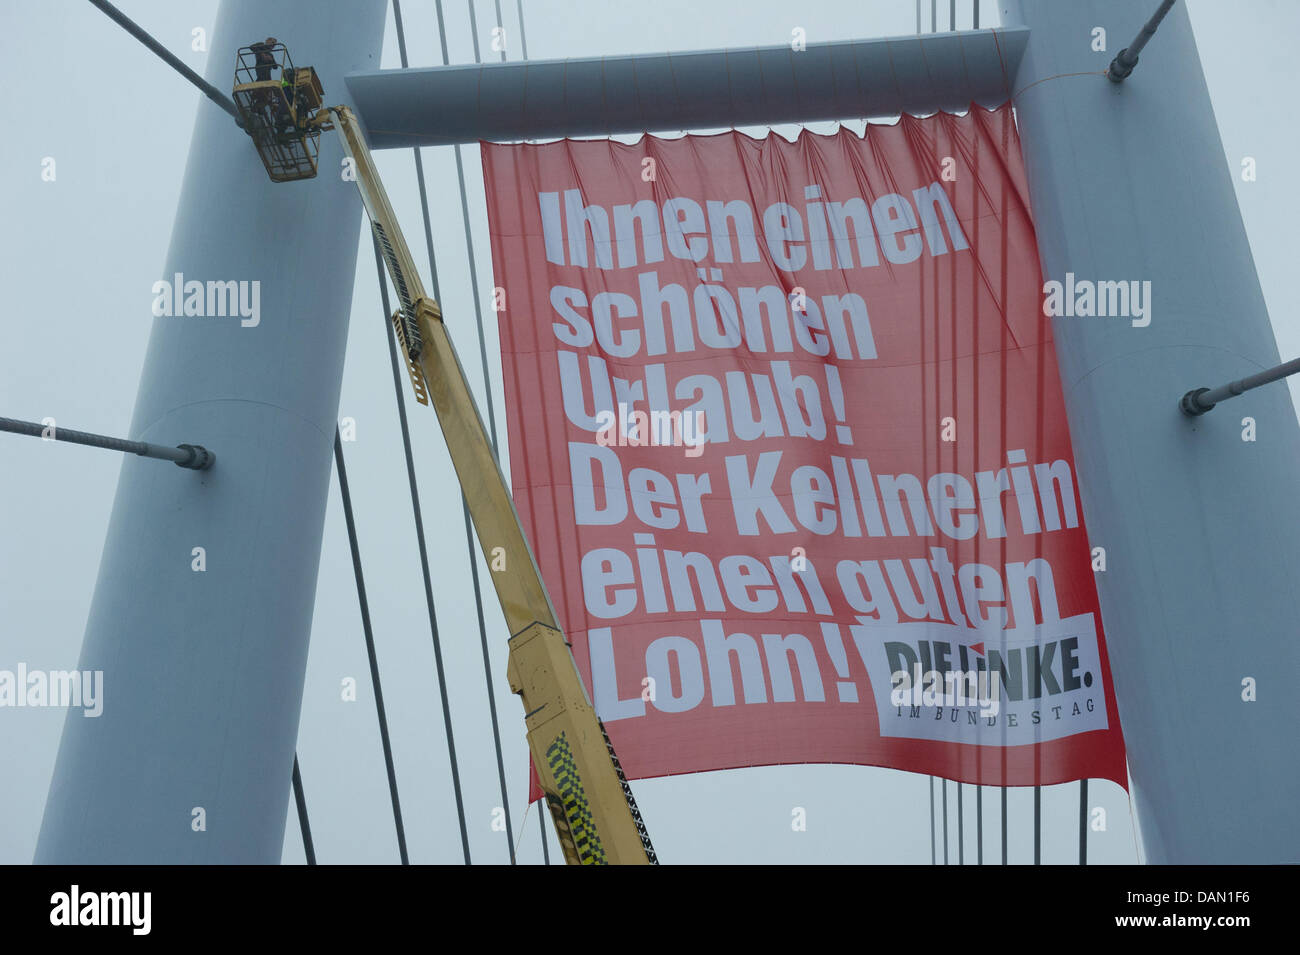 Workers hang a banner from 'Die Linke' (The Left) political party on the Ruegen Bridge in Stralsund, Germany, - Stock Image